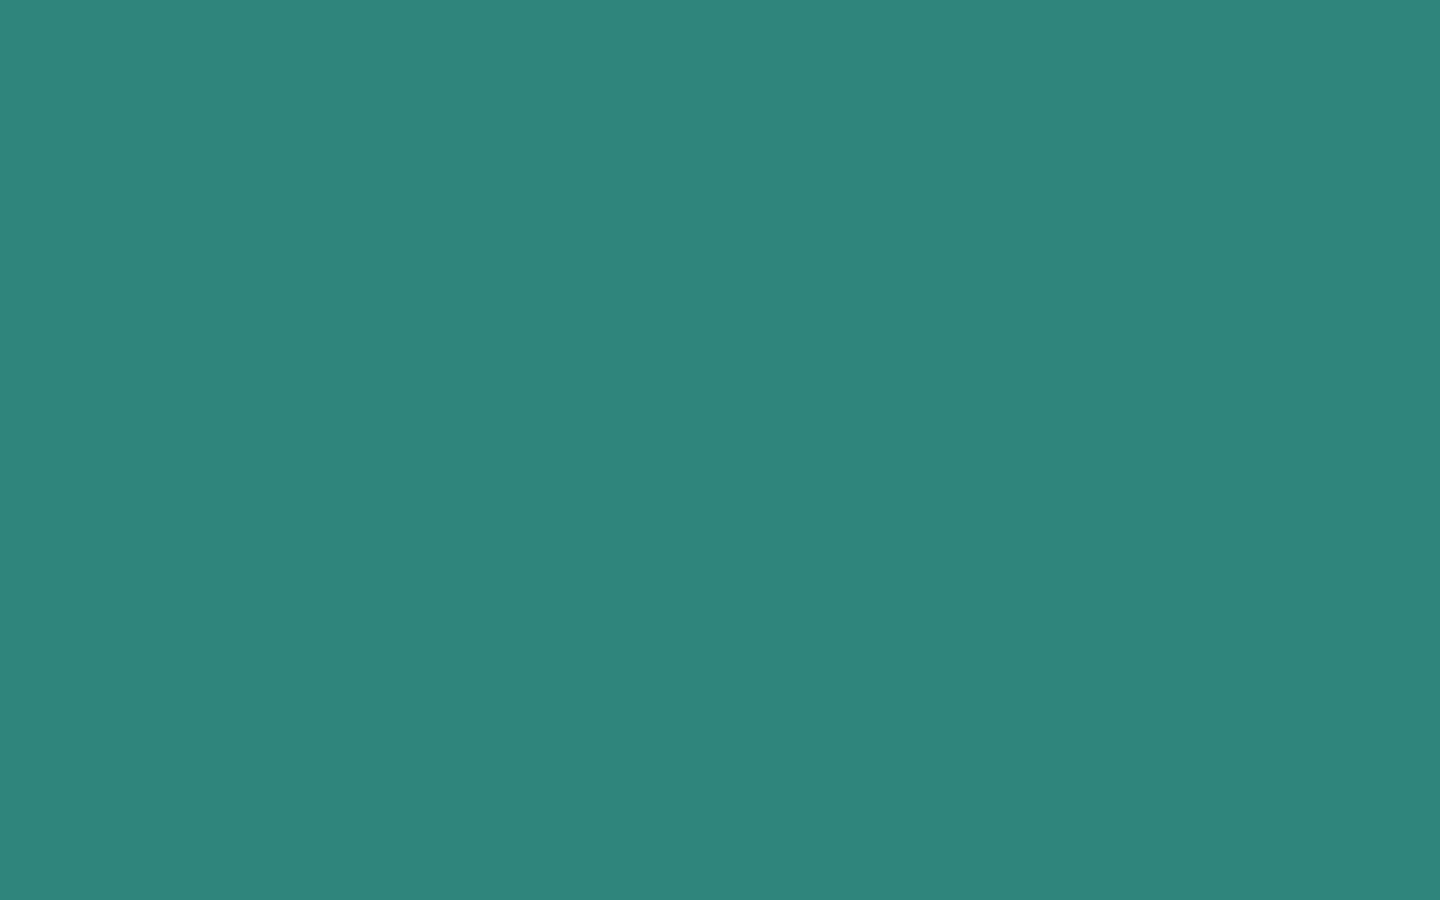 1440x900 Celadon Green Solid Color Background